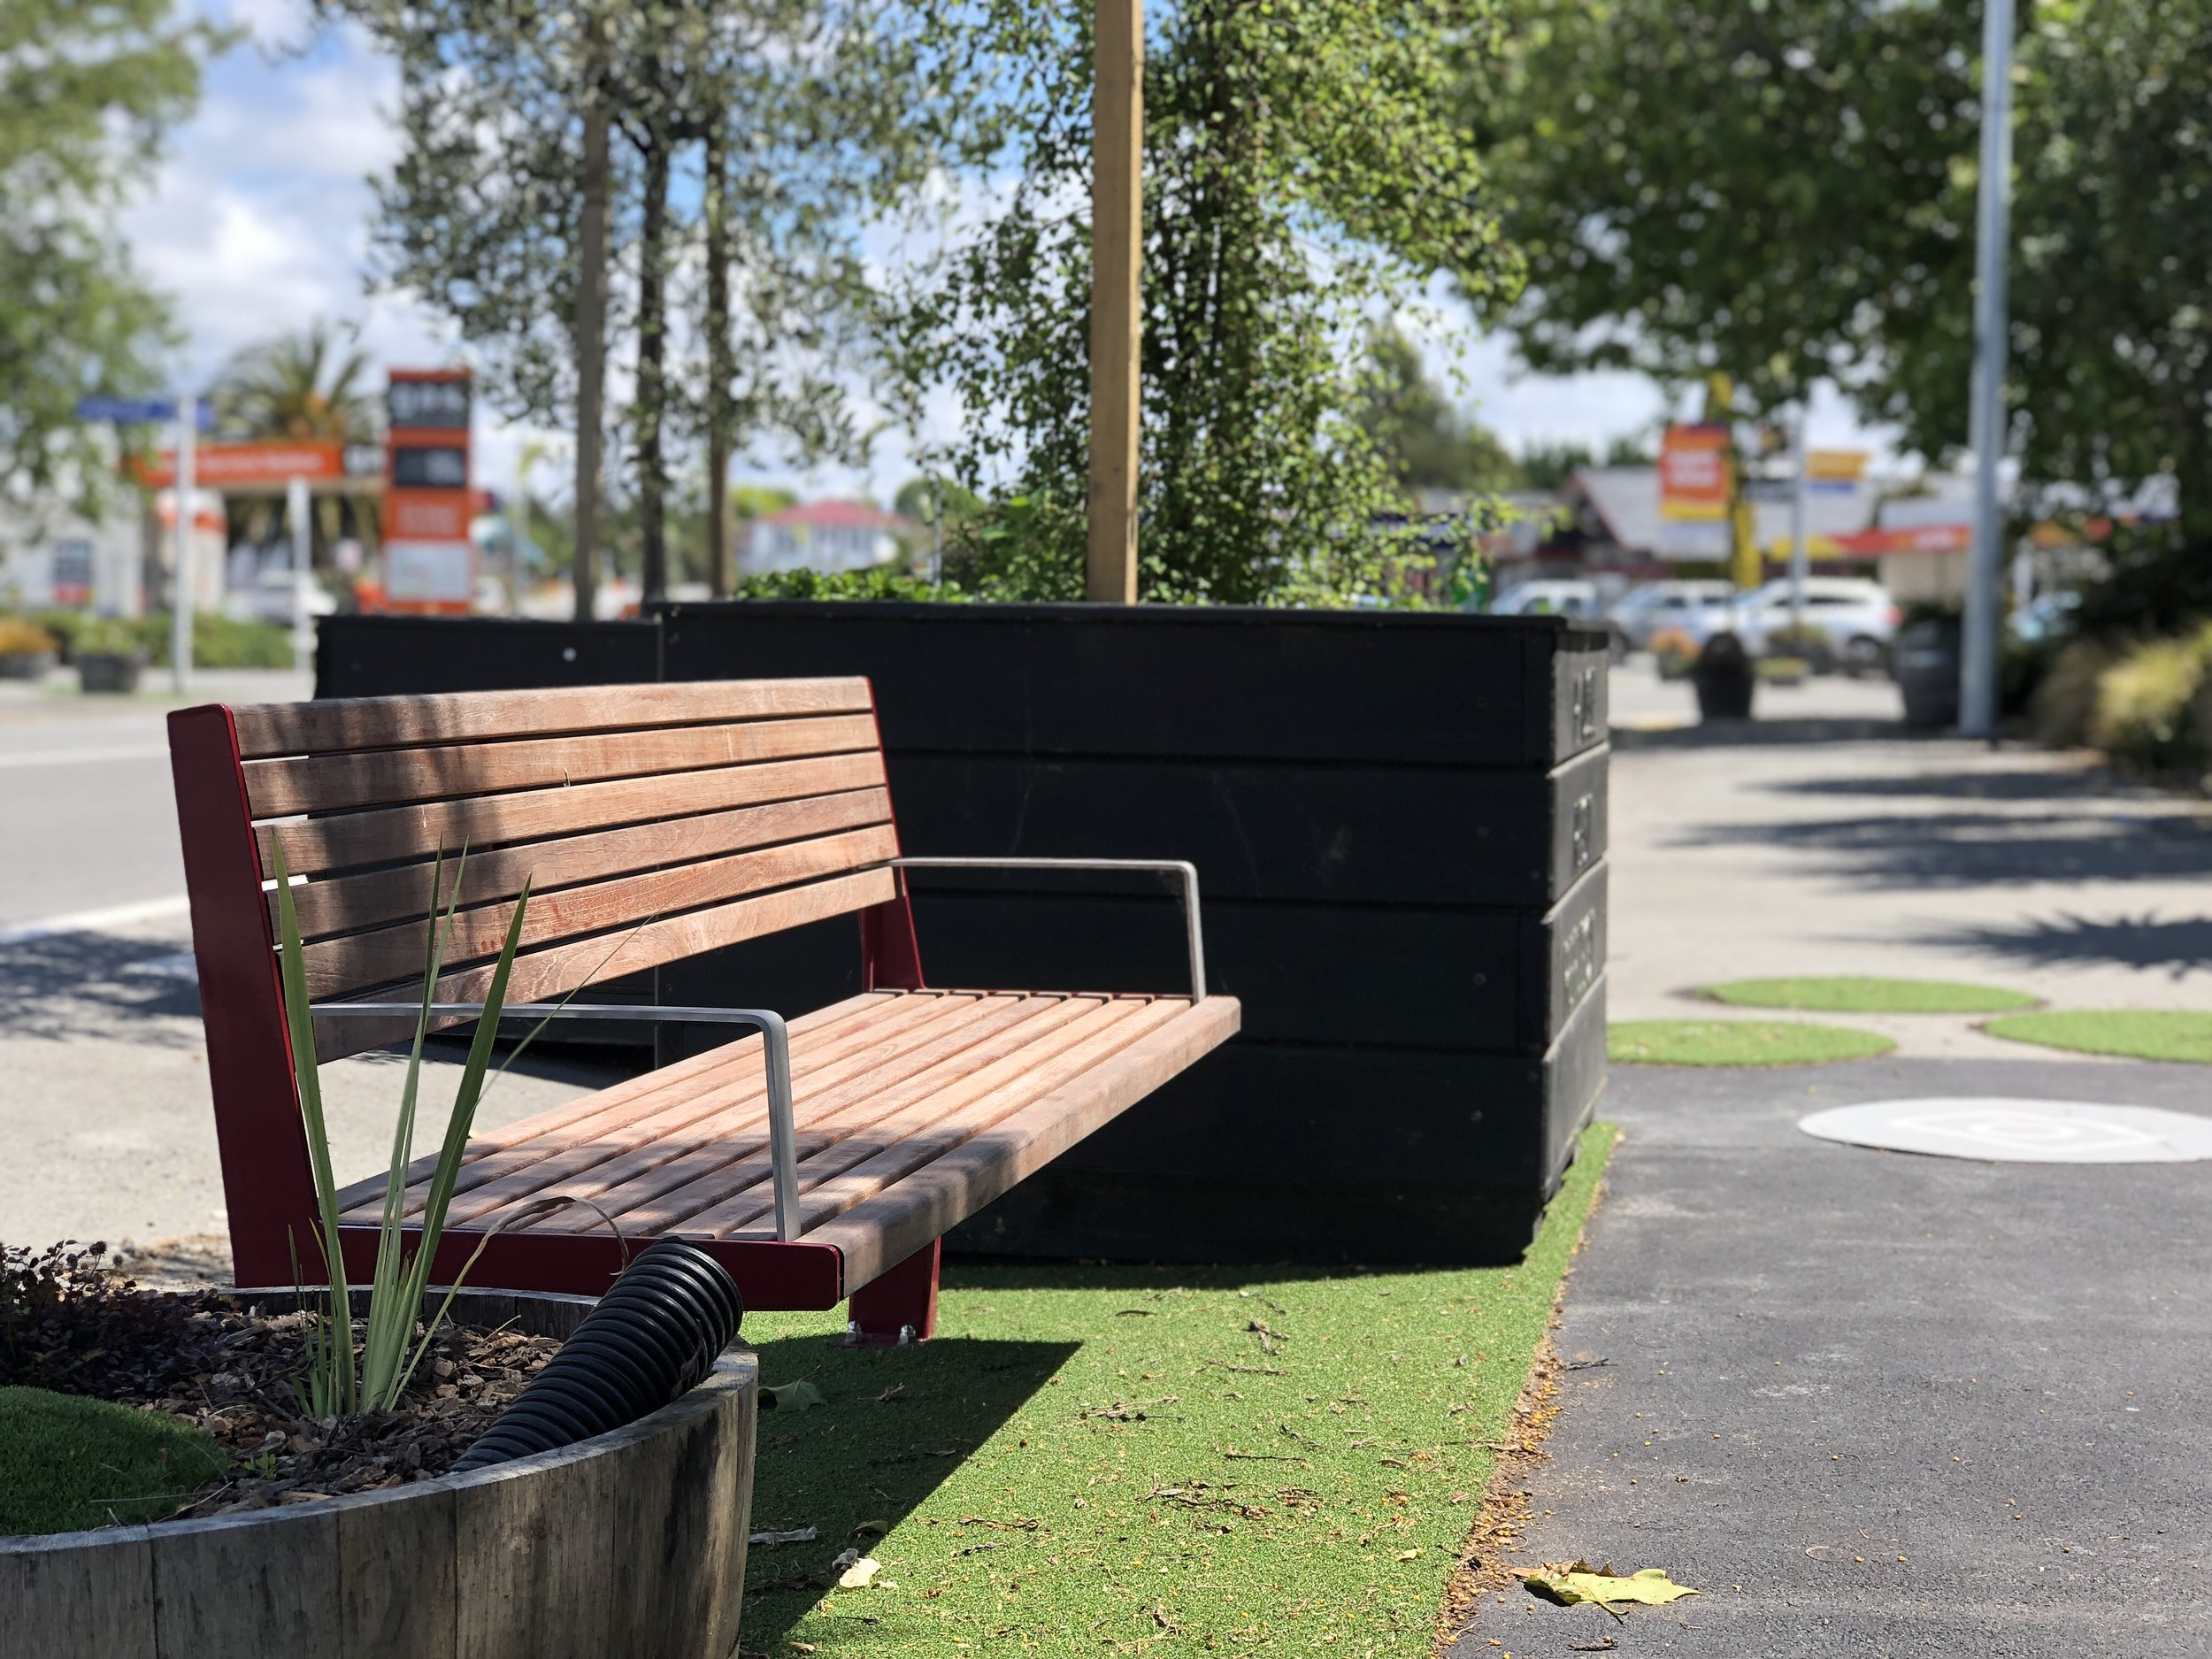 The team behind Pause Park wanted to strengthen the connection between the built and natural environment.